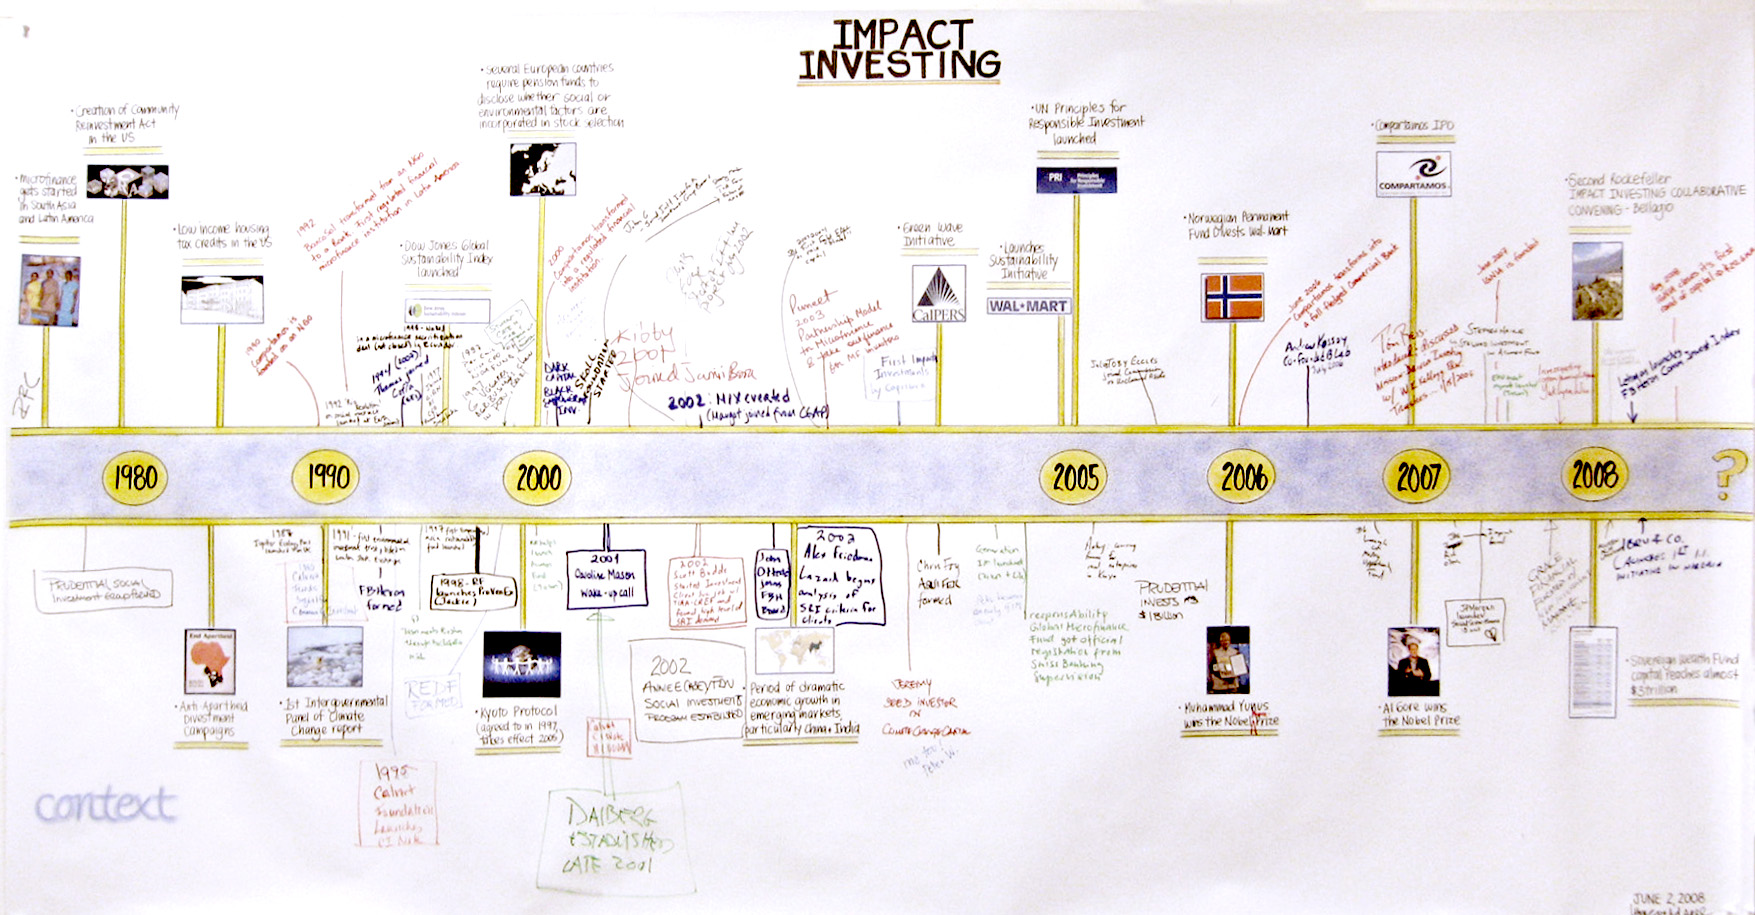 To break the ice at the beginning of a meeting, Lynn created atimeline of the history of the impact investing field. Working together, the participants of the meeting refined and expanded the timeline to create a more detailed history and shared story.